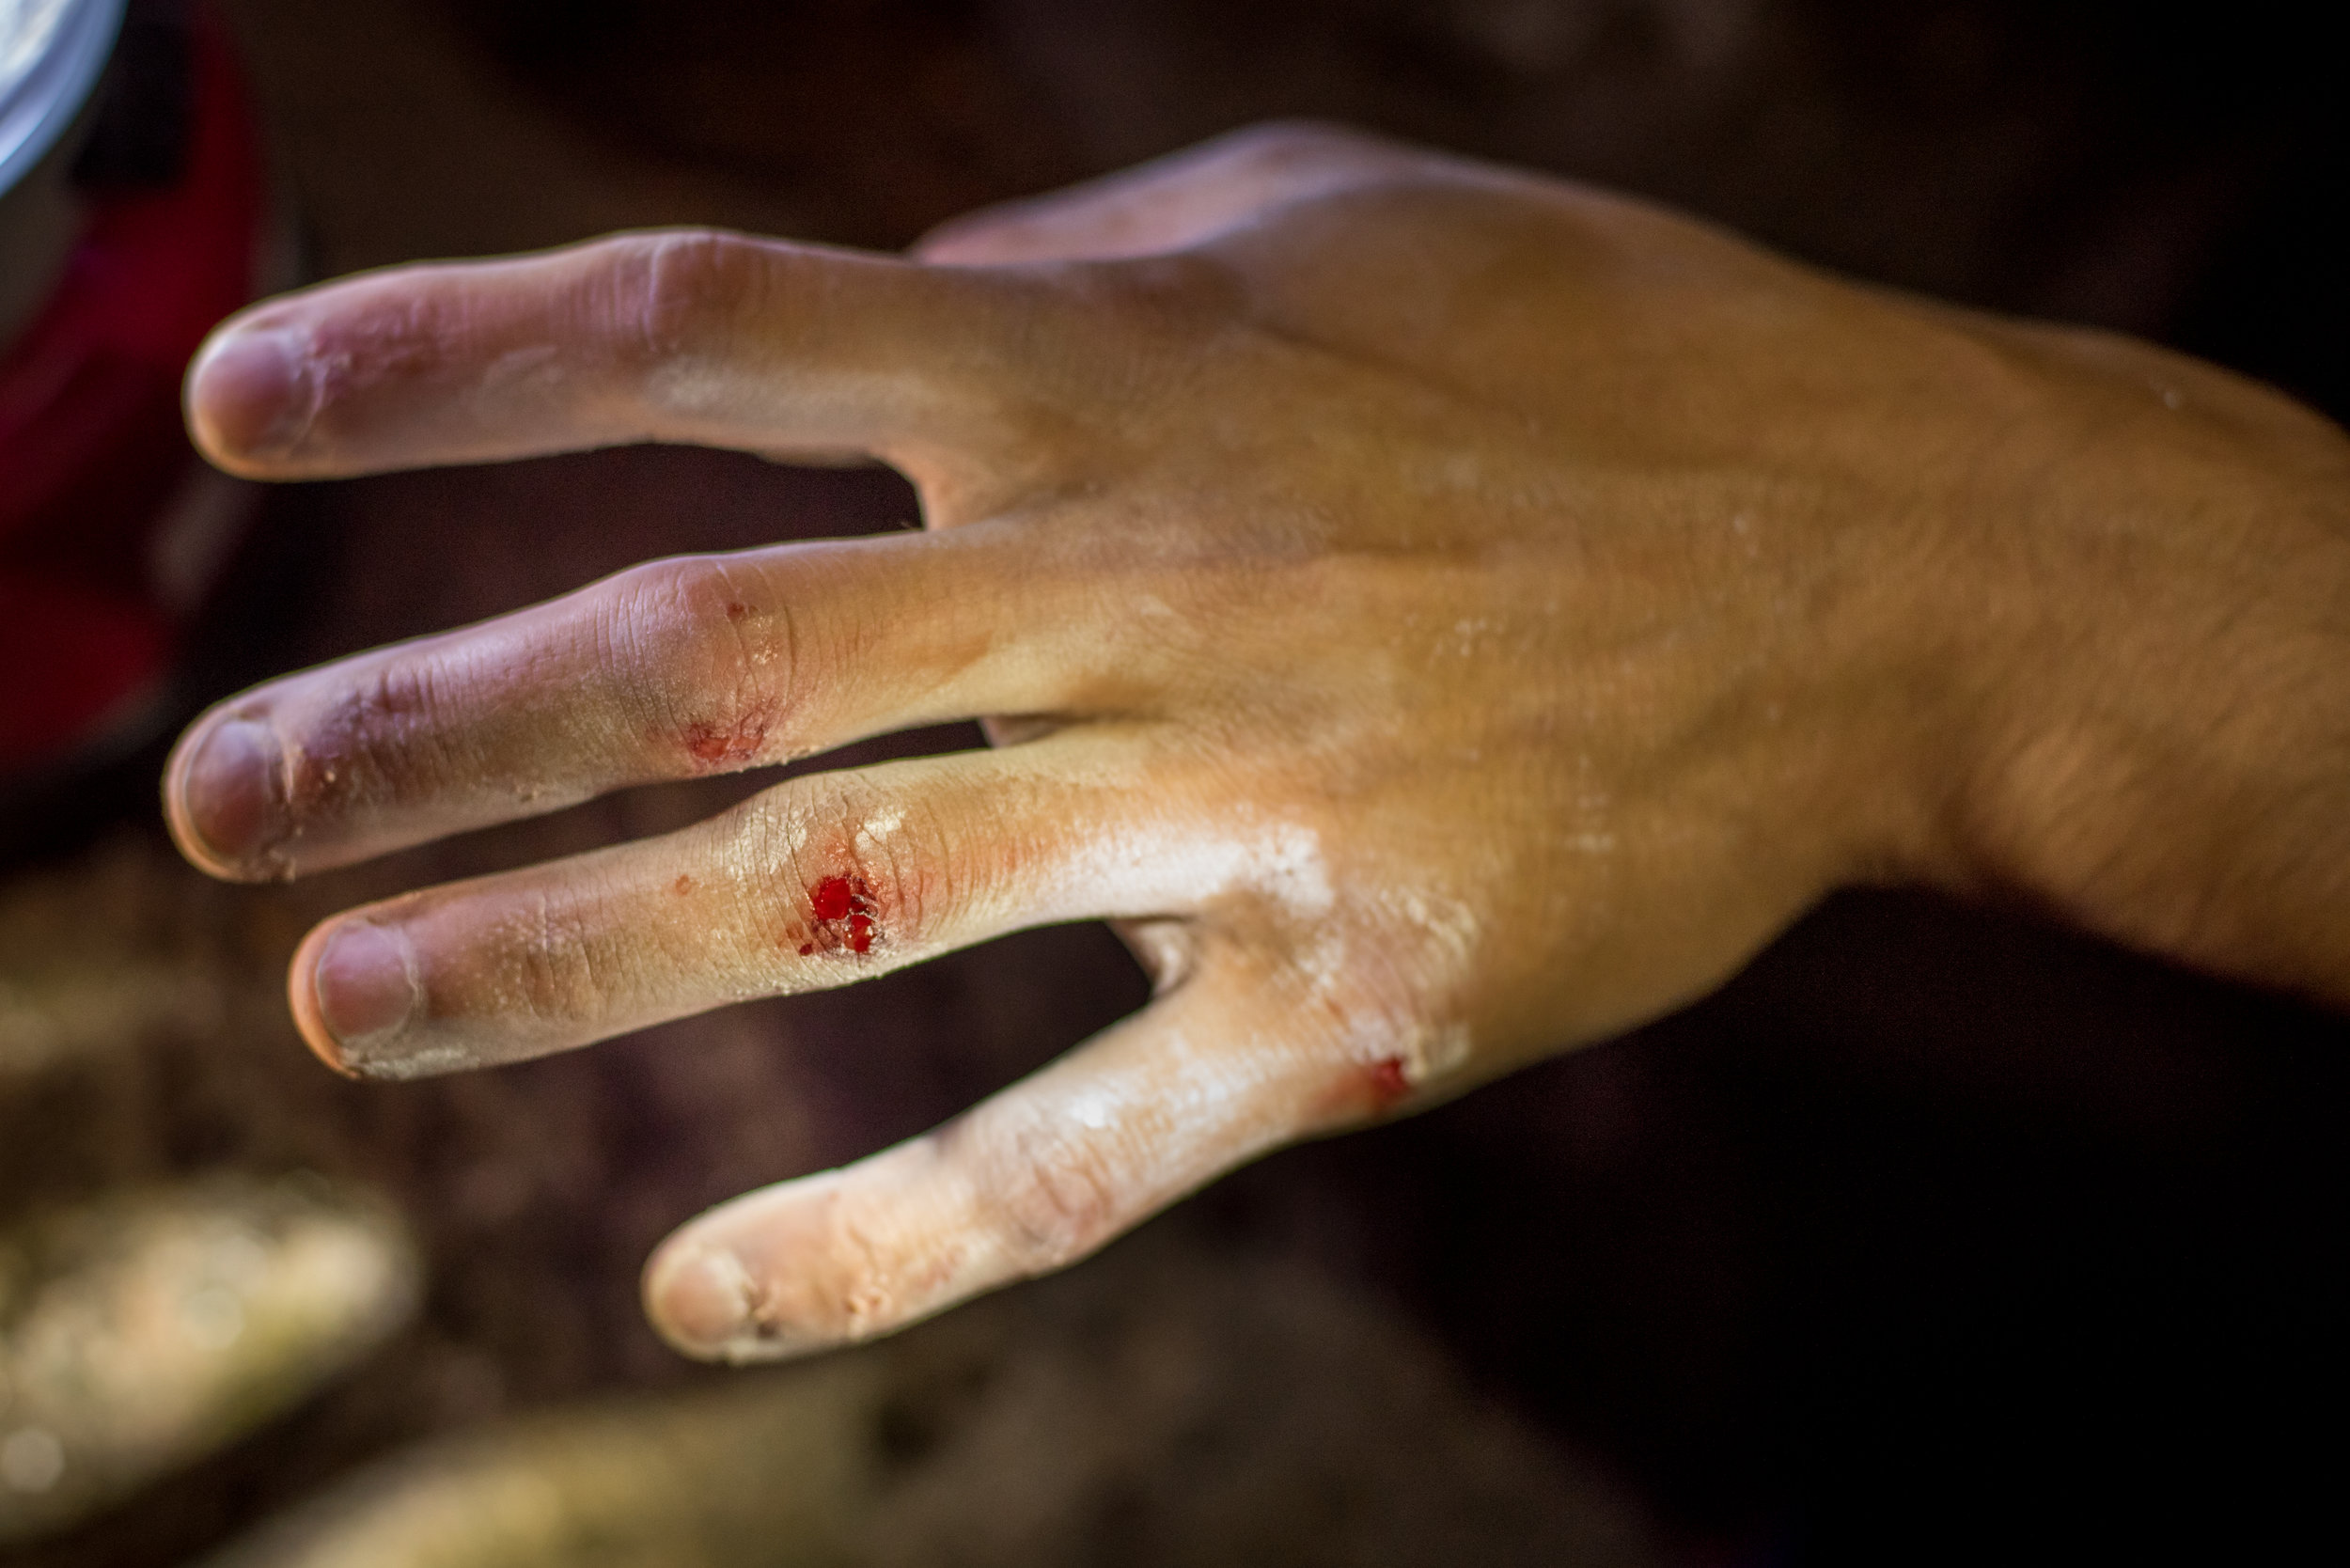 Blake got a nice knuckle-scraper on 'The Raven'. You're not climbing hard until you're bleeding, right?